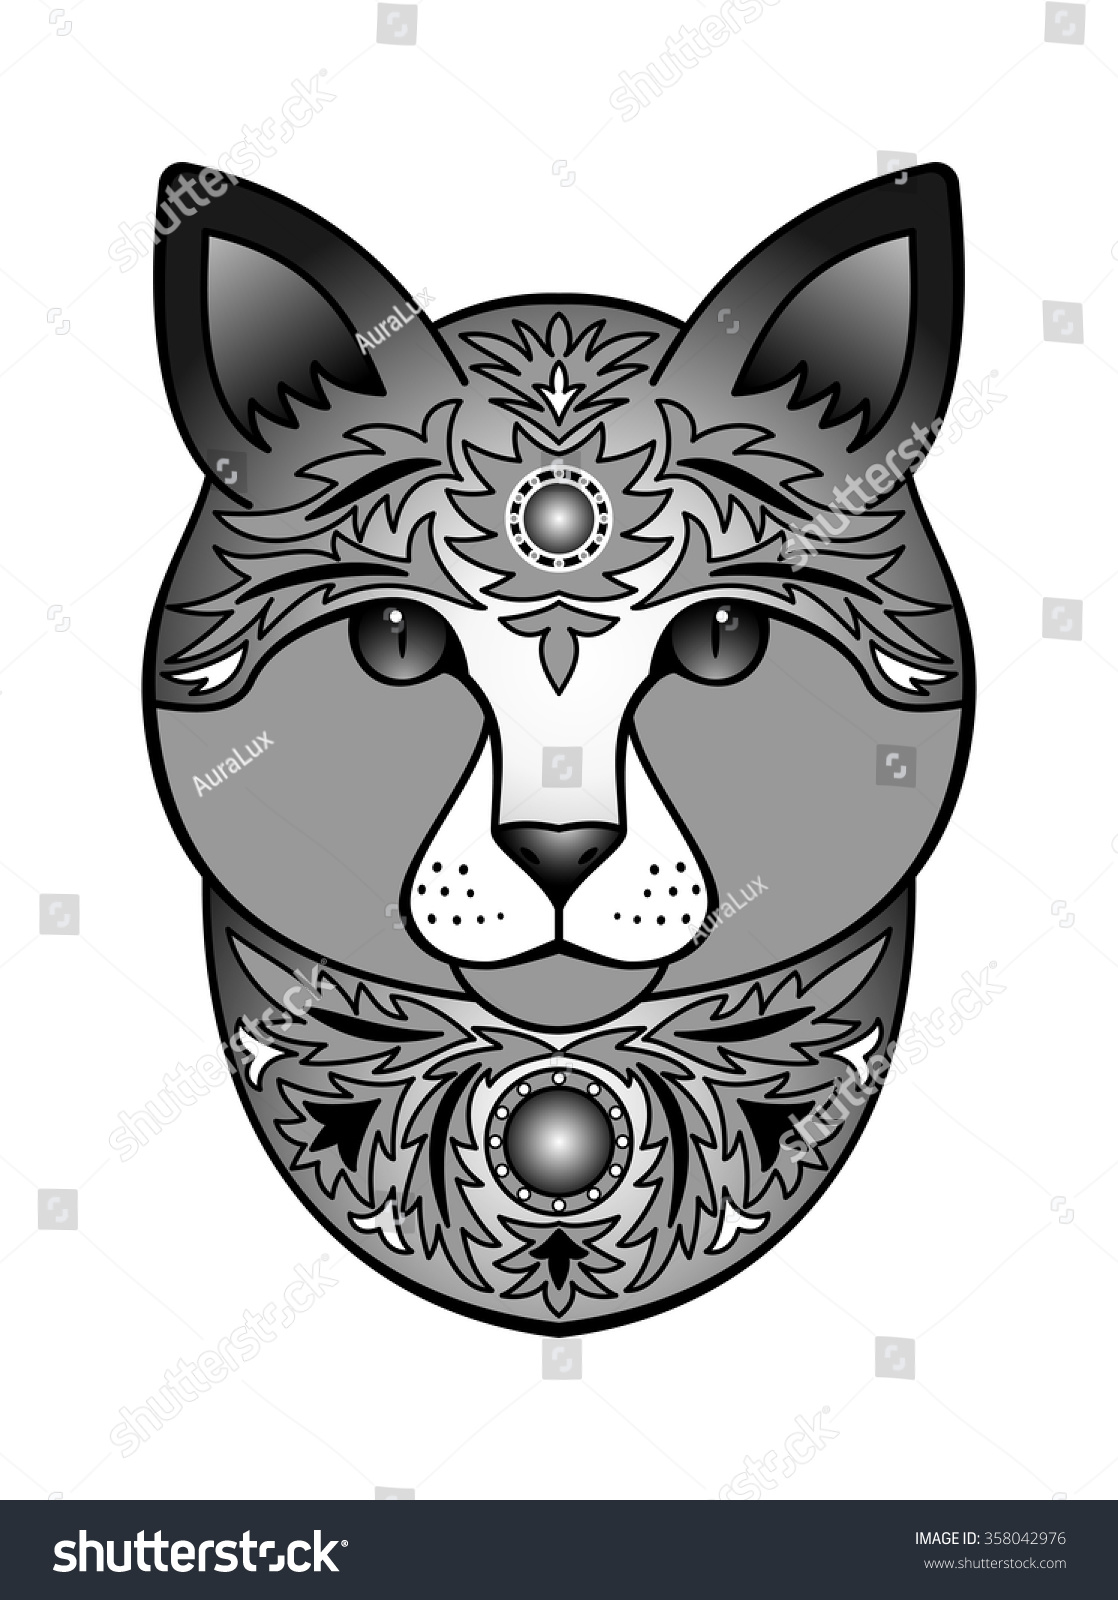 Ornamental Black Cat Vector Illustration Abstract Stock Vector